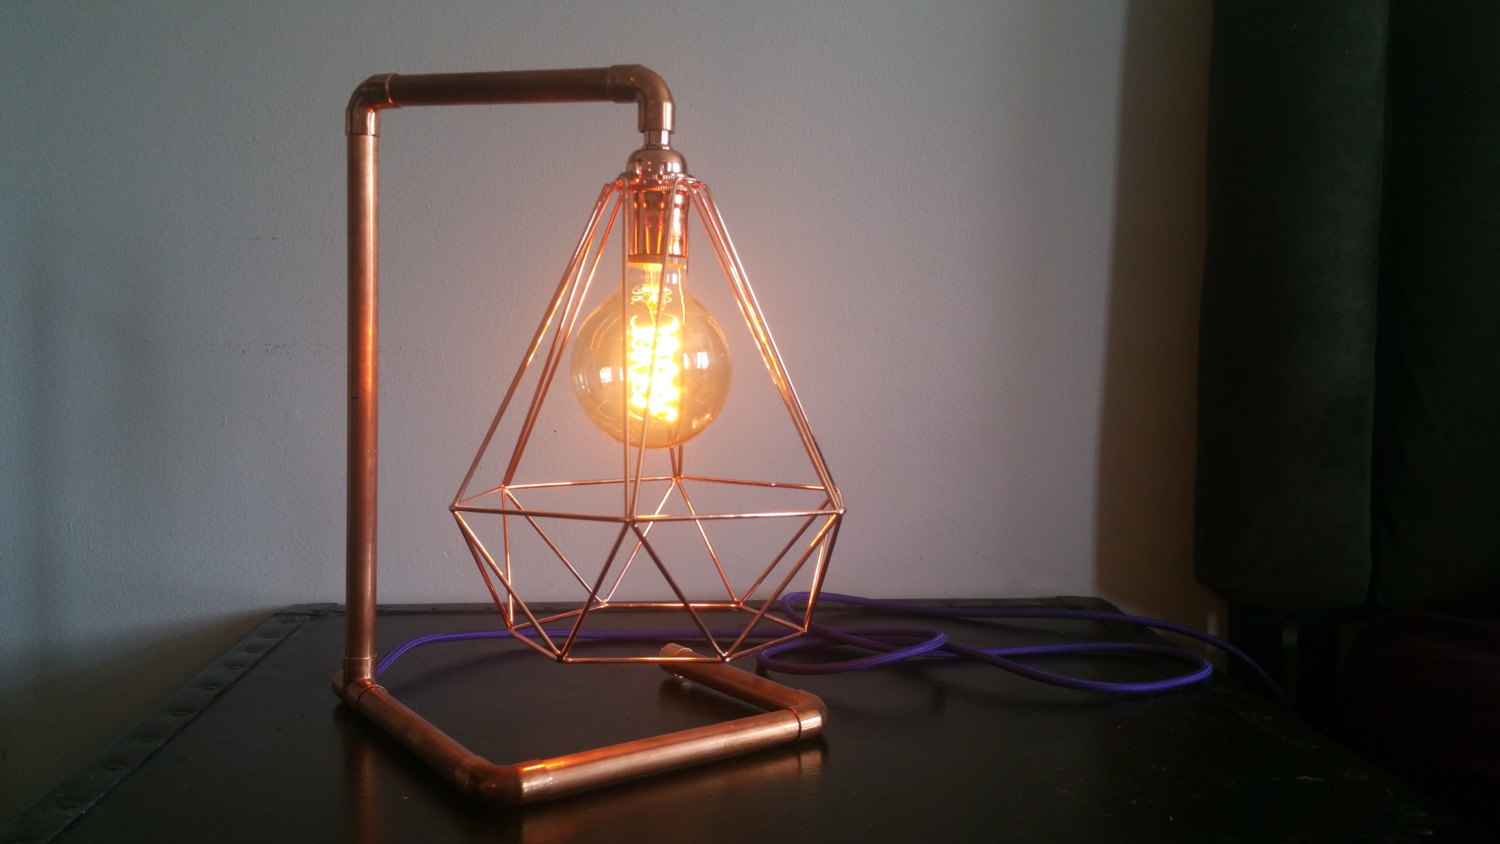 Lamp Design 16 Imposing Copper Light Designs That Make A Strong Statement